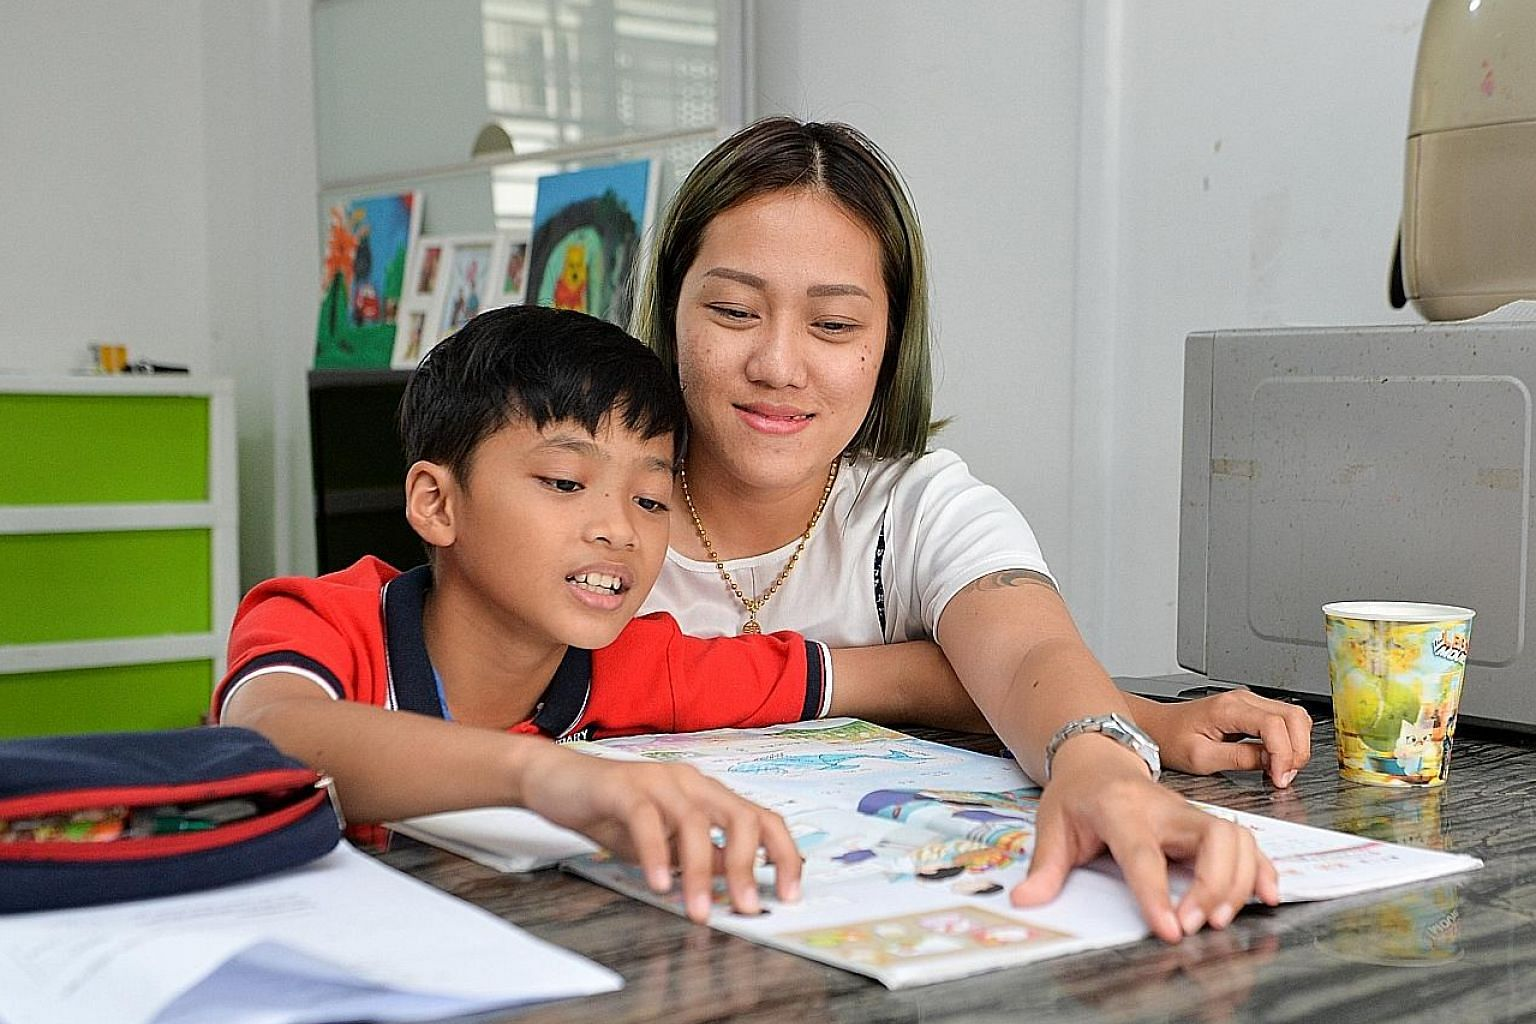 Children like Tanabordee (seen here with his mother Wanwisa Lim) who are exposed to multiple languages tend to demonstrate greater cognitive flexibility and may enjoy advantages for life.